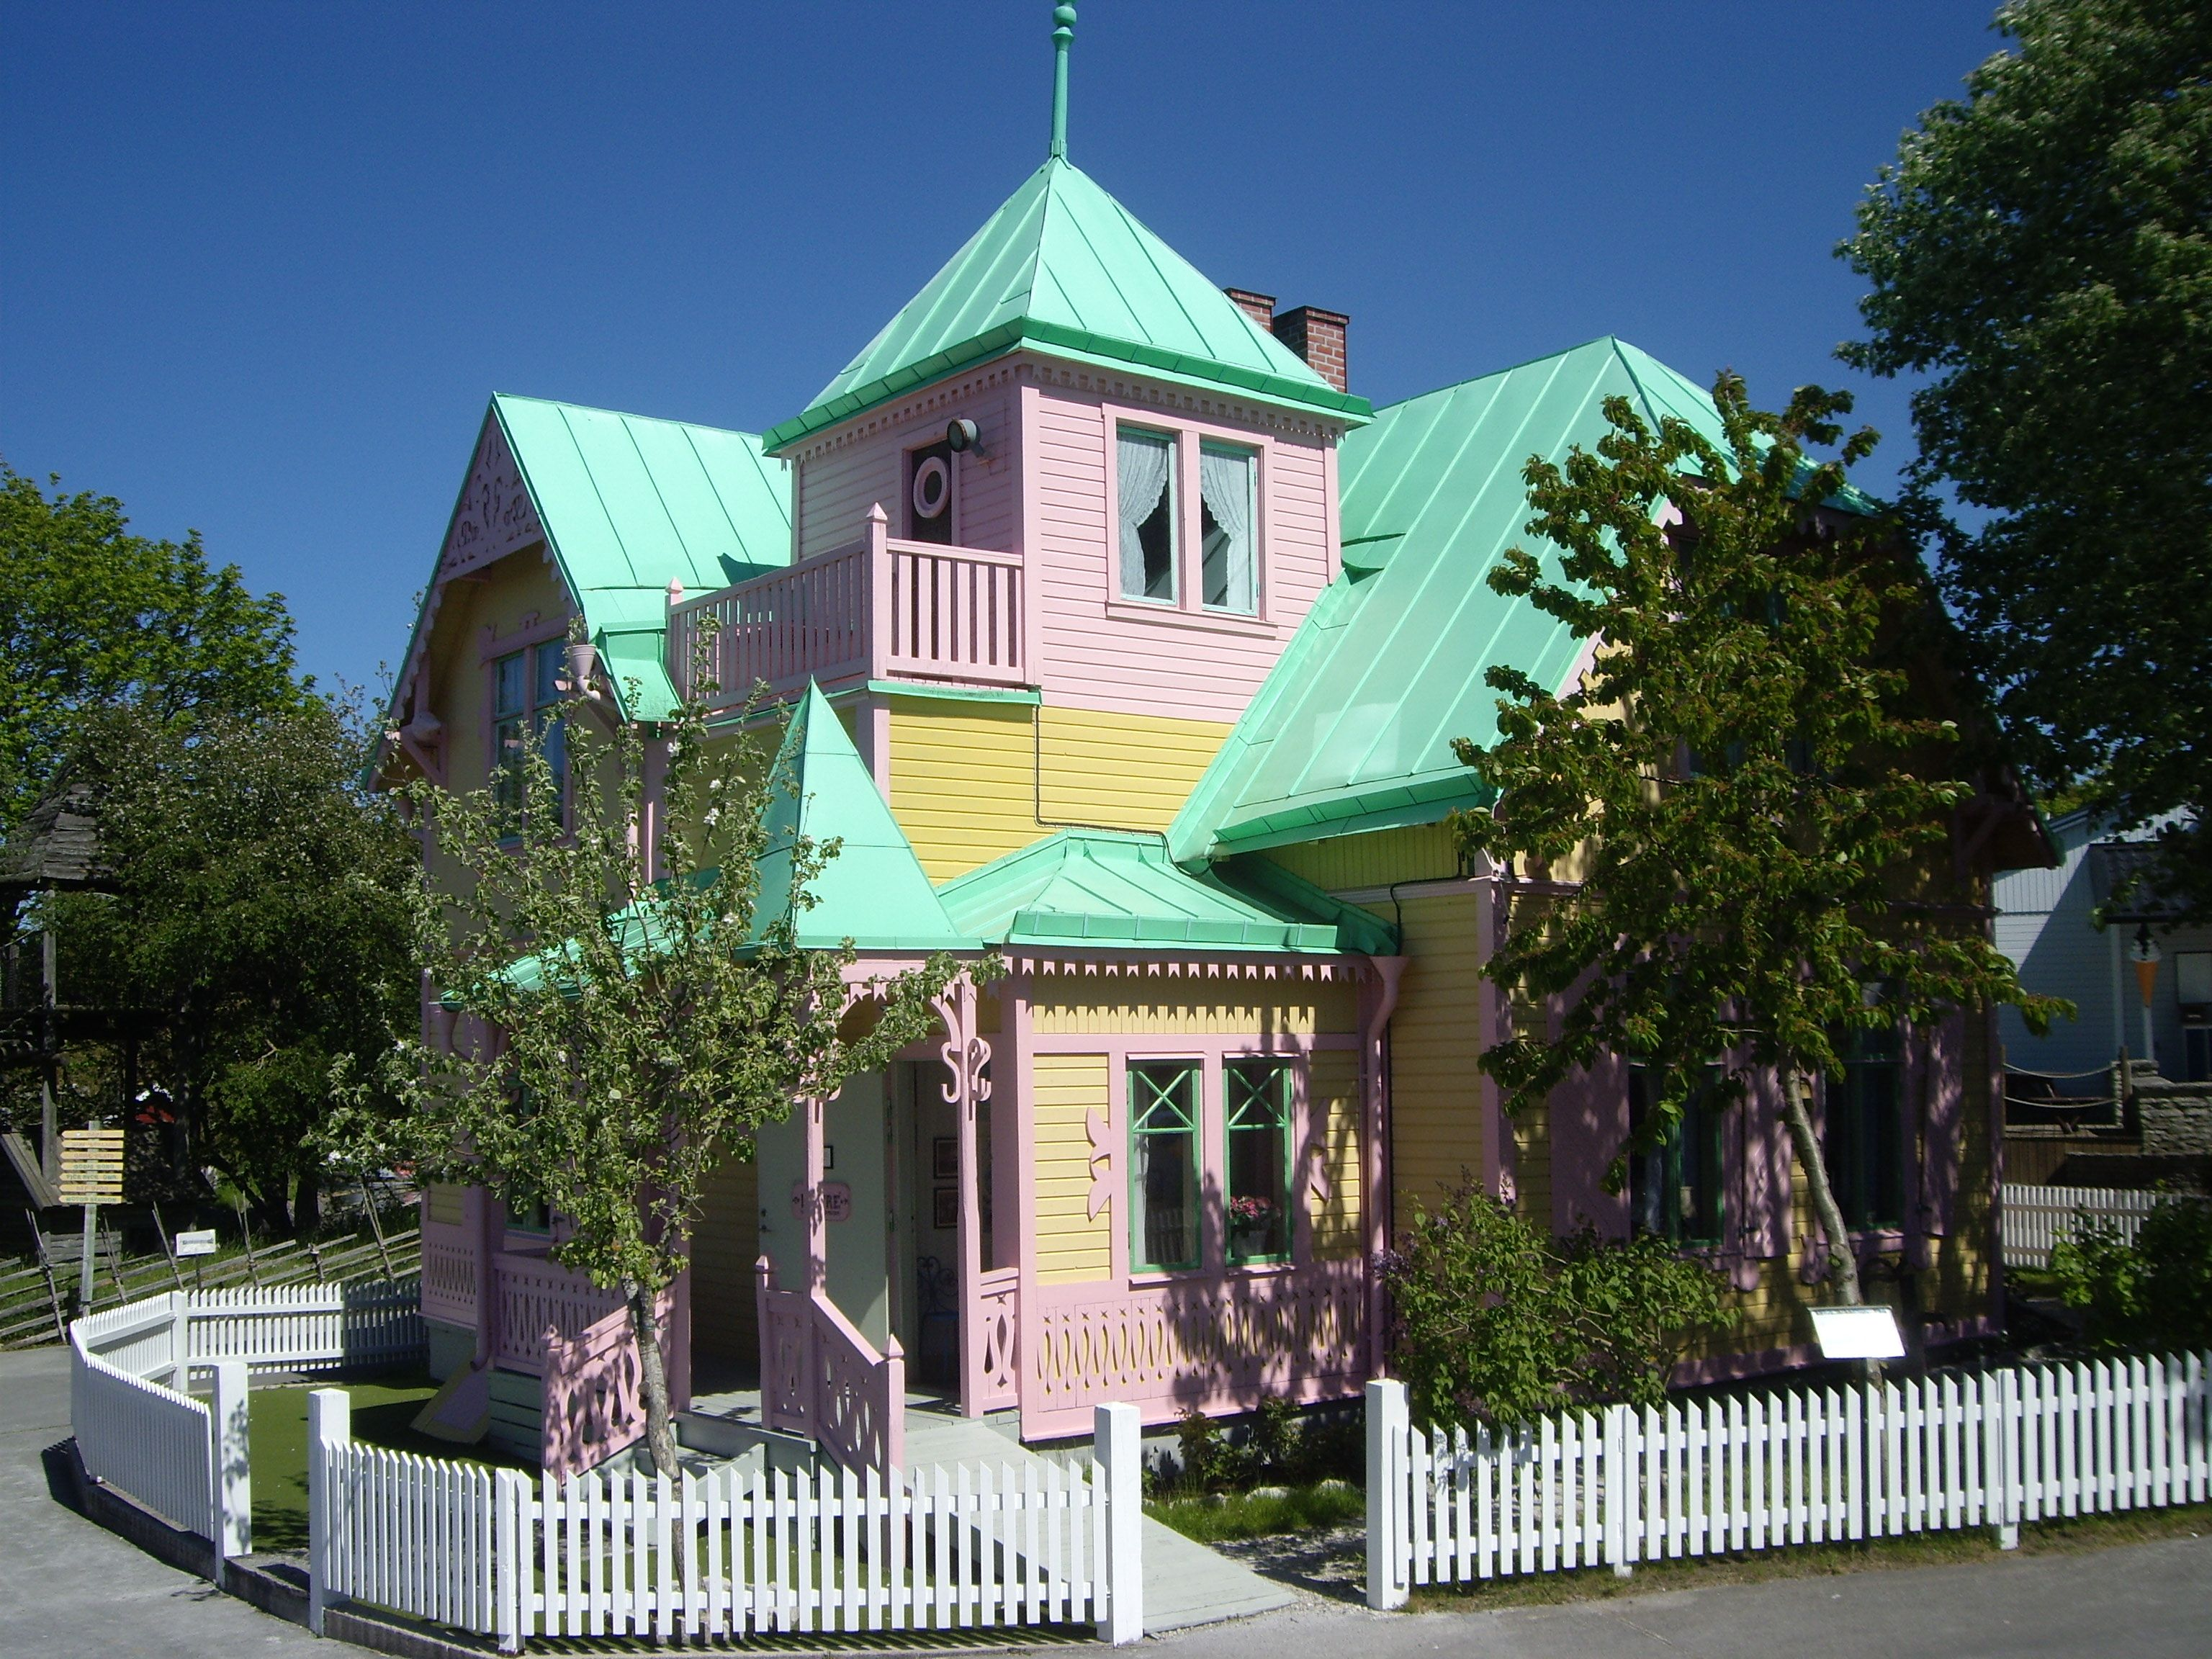 Gartenhaus Kaufen Warendorf House Of Pippi Longstocking Near Visby Gotland Sweden